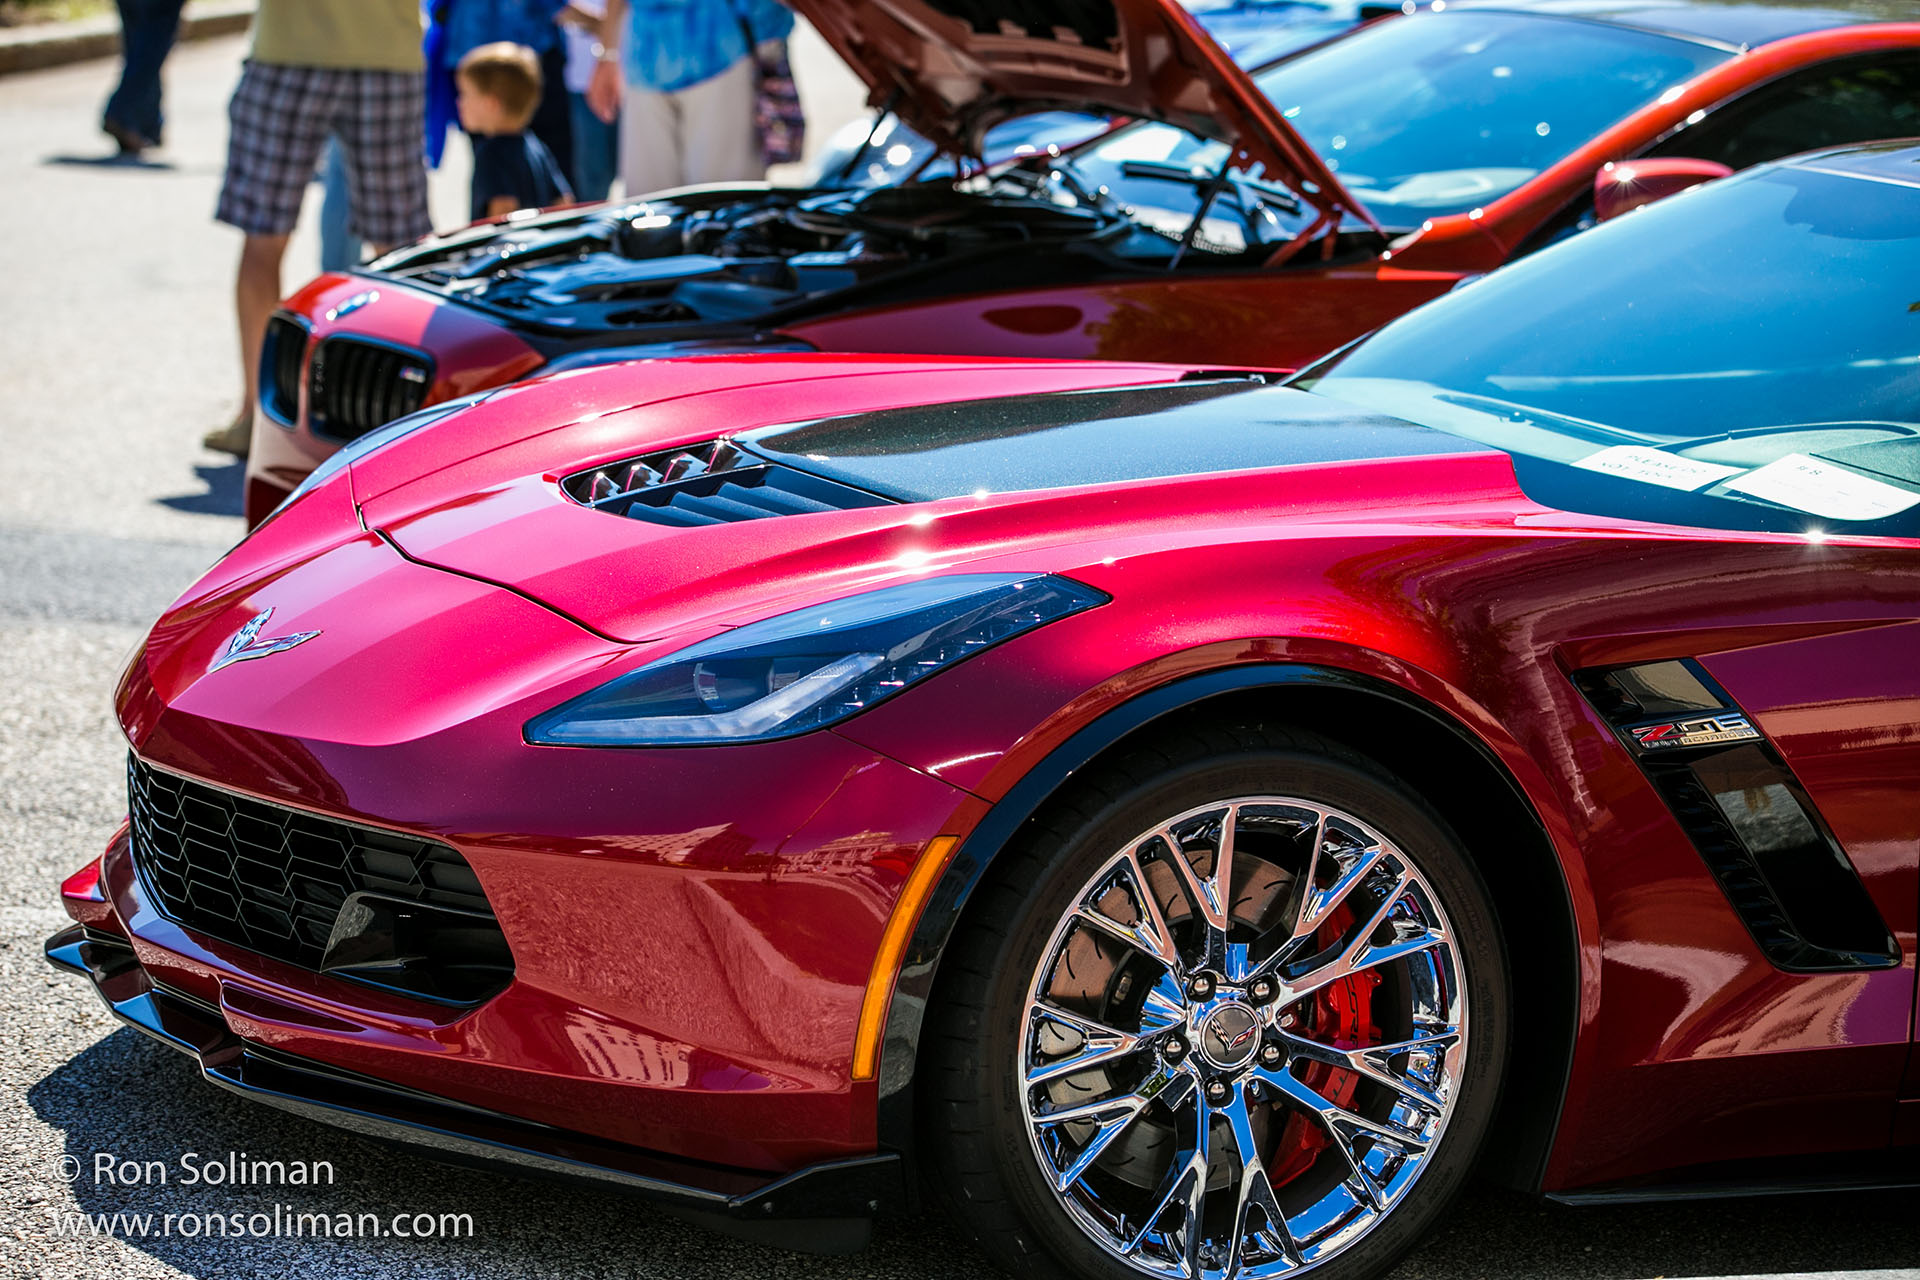 SUPERCARS ON STATE STREET